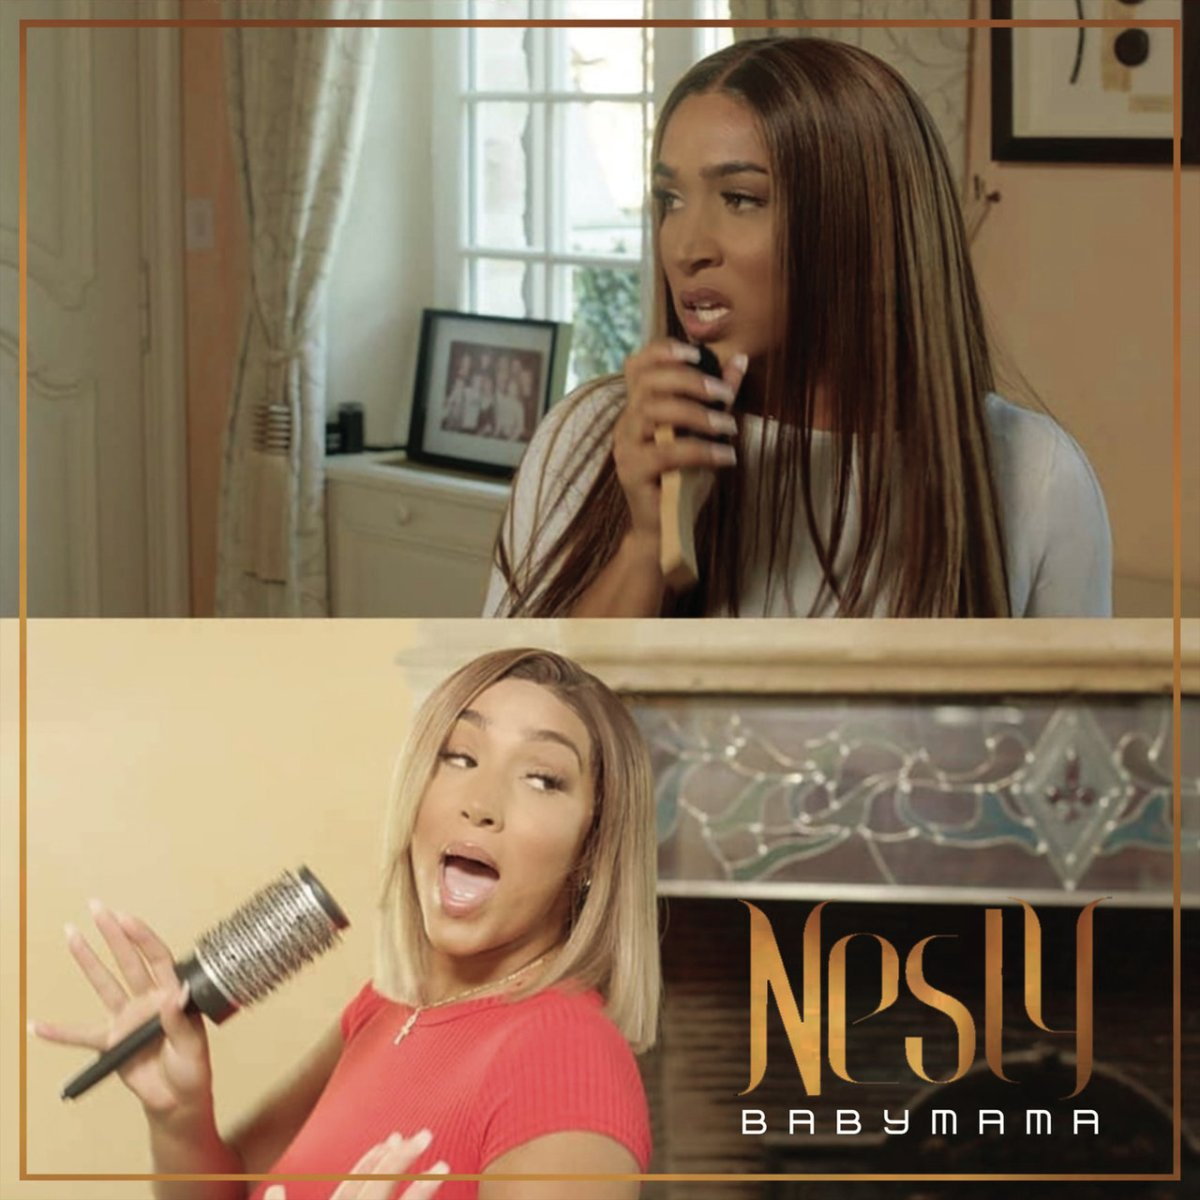 Nesly - Baby Mama (Cover)